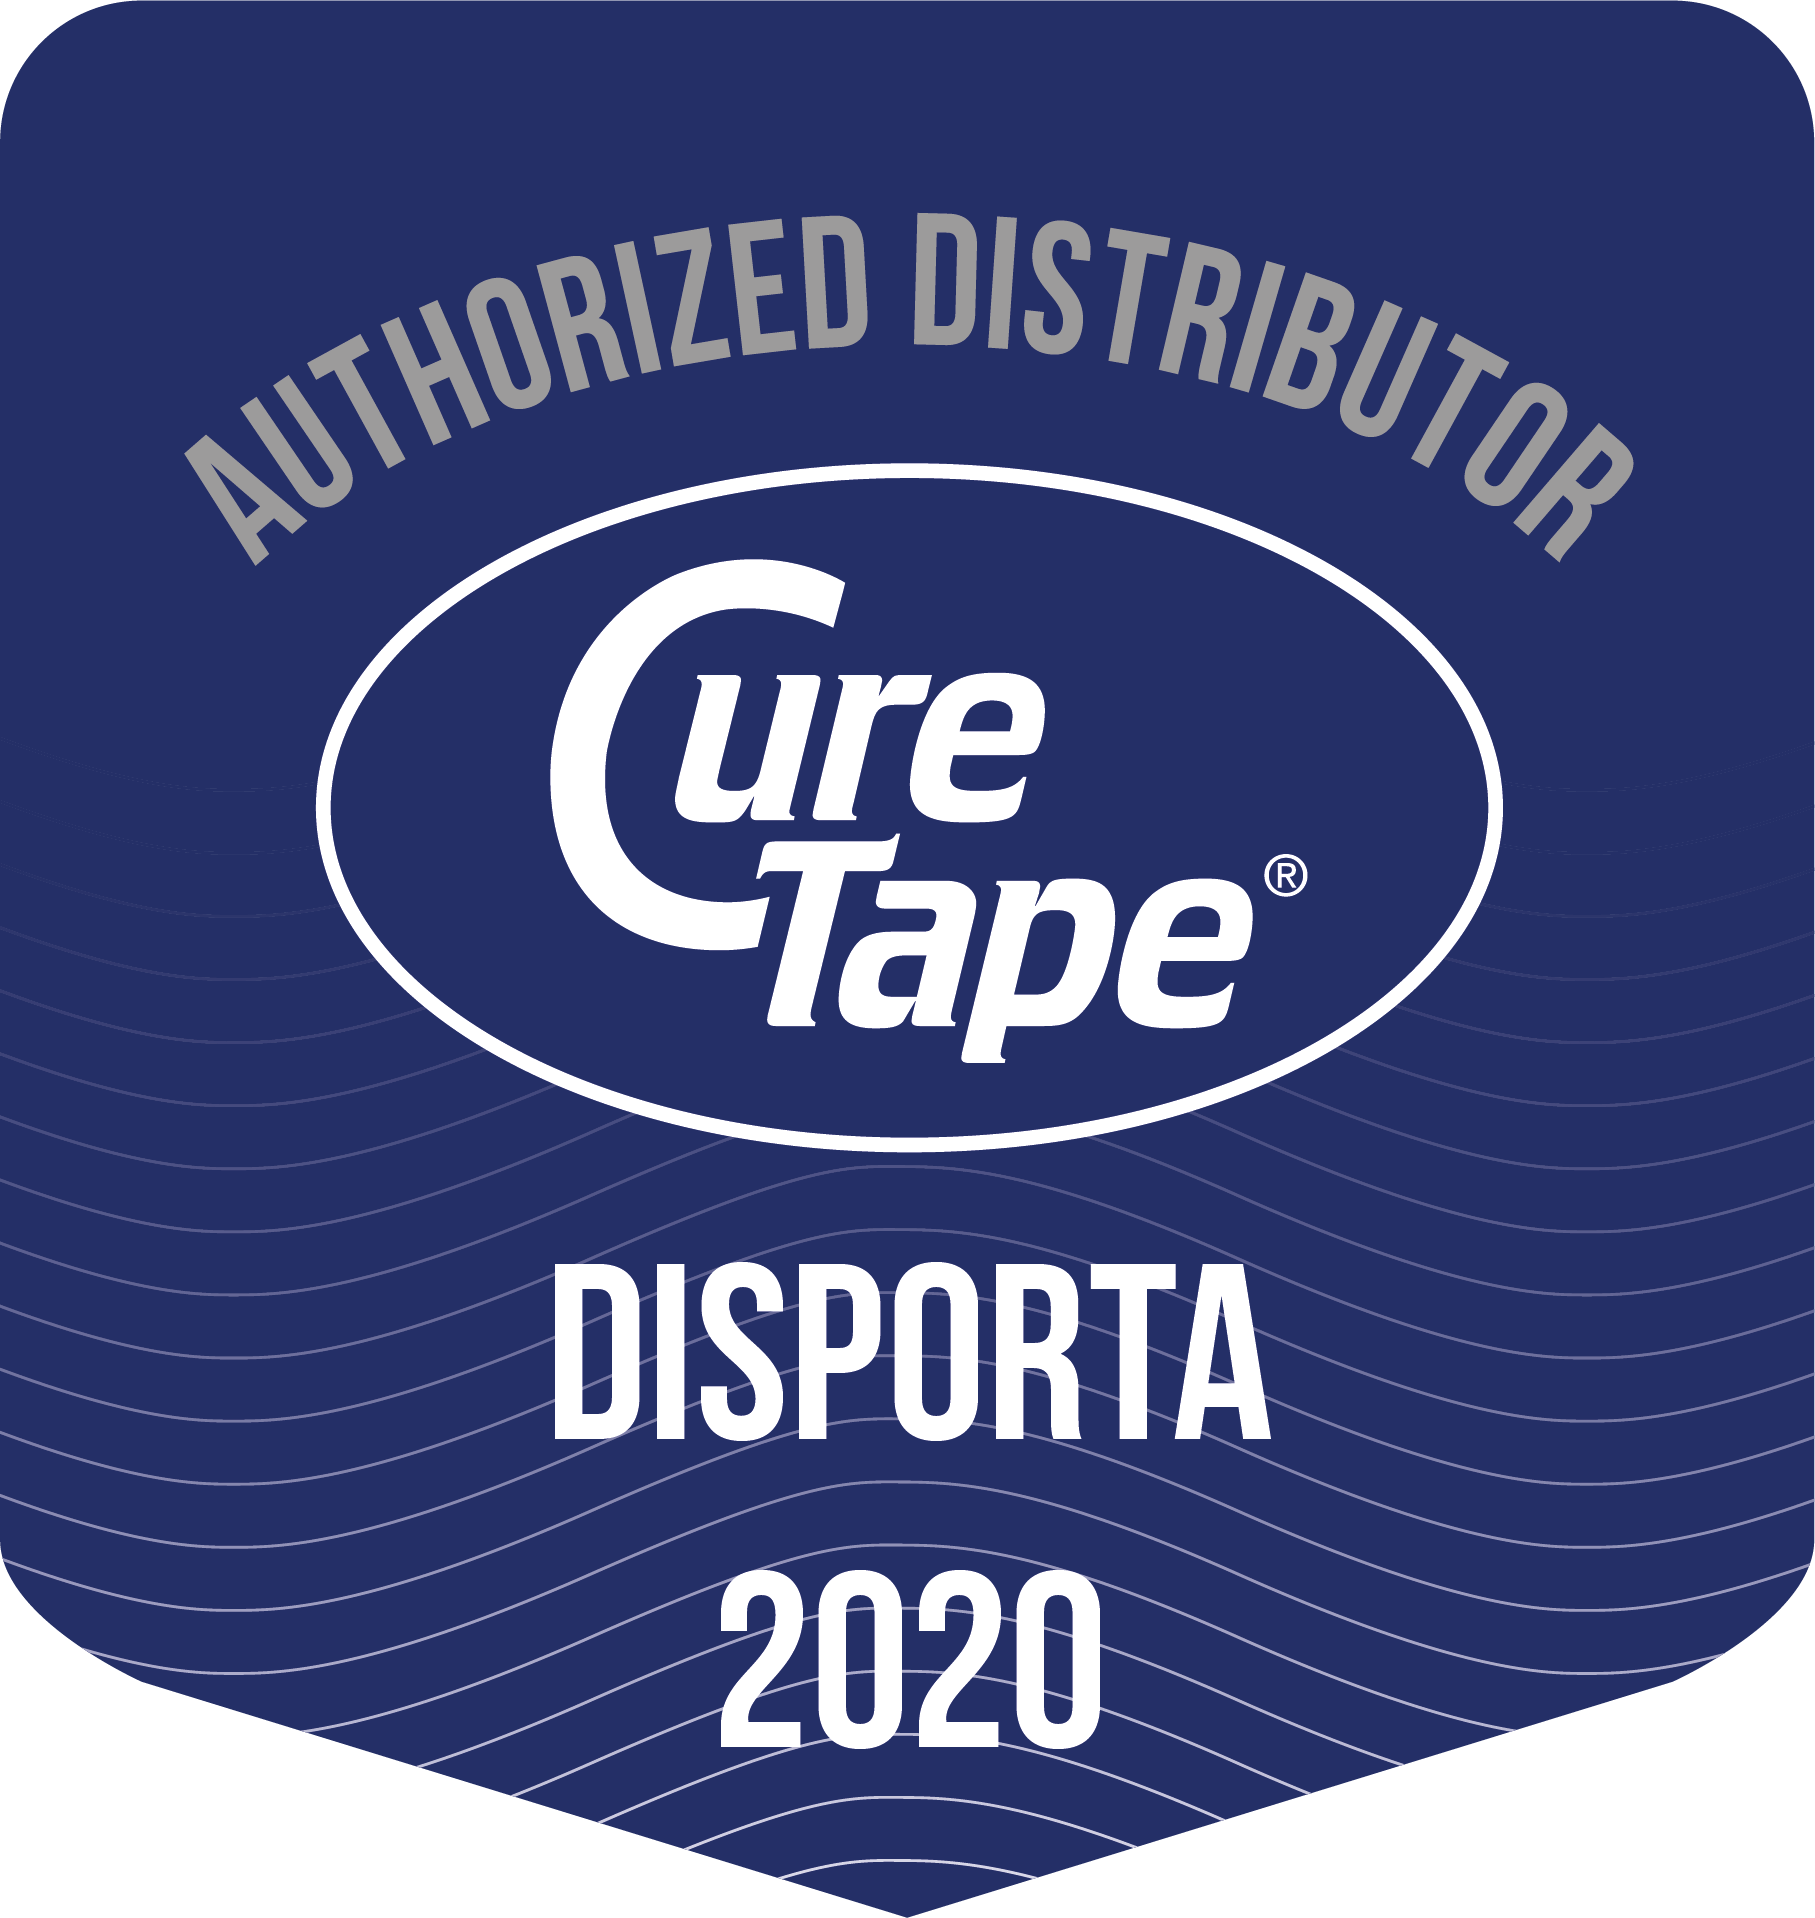 Authorized Distributor CureTape